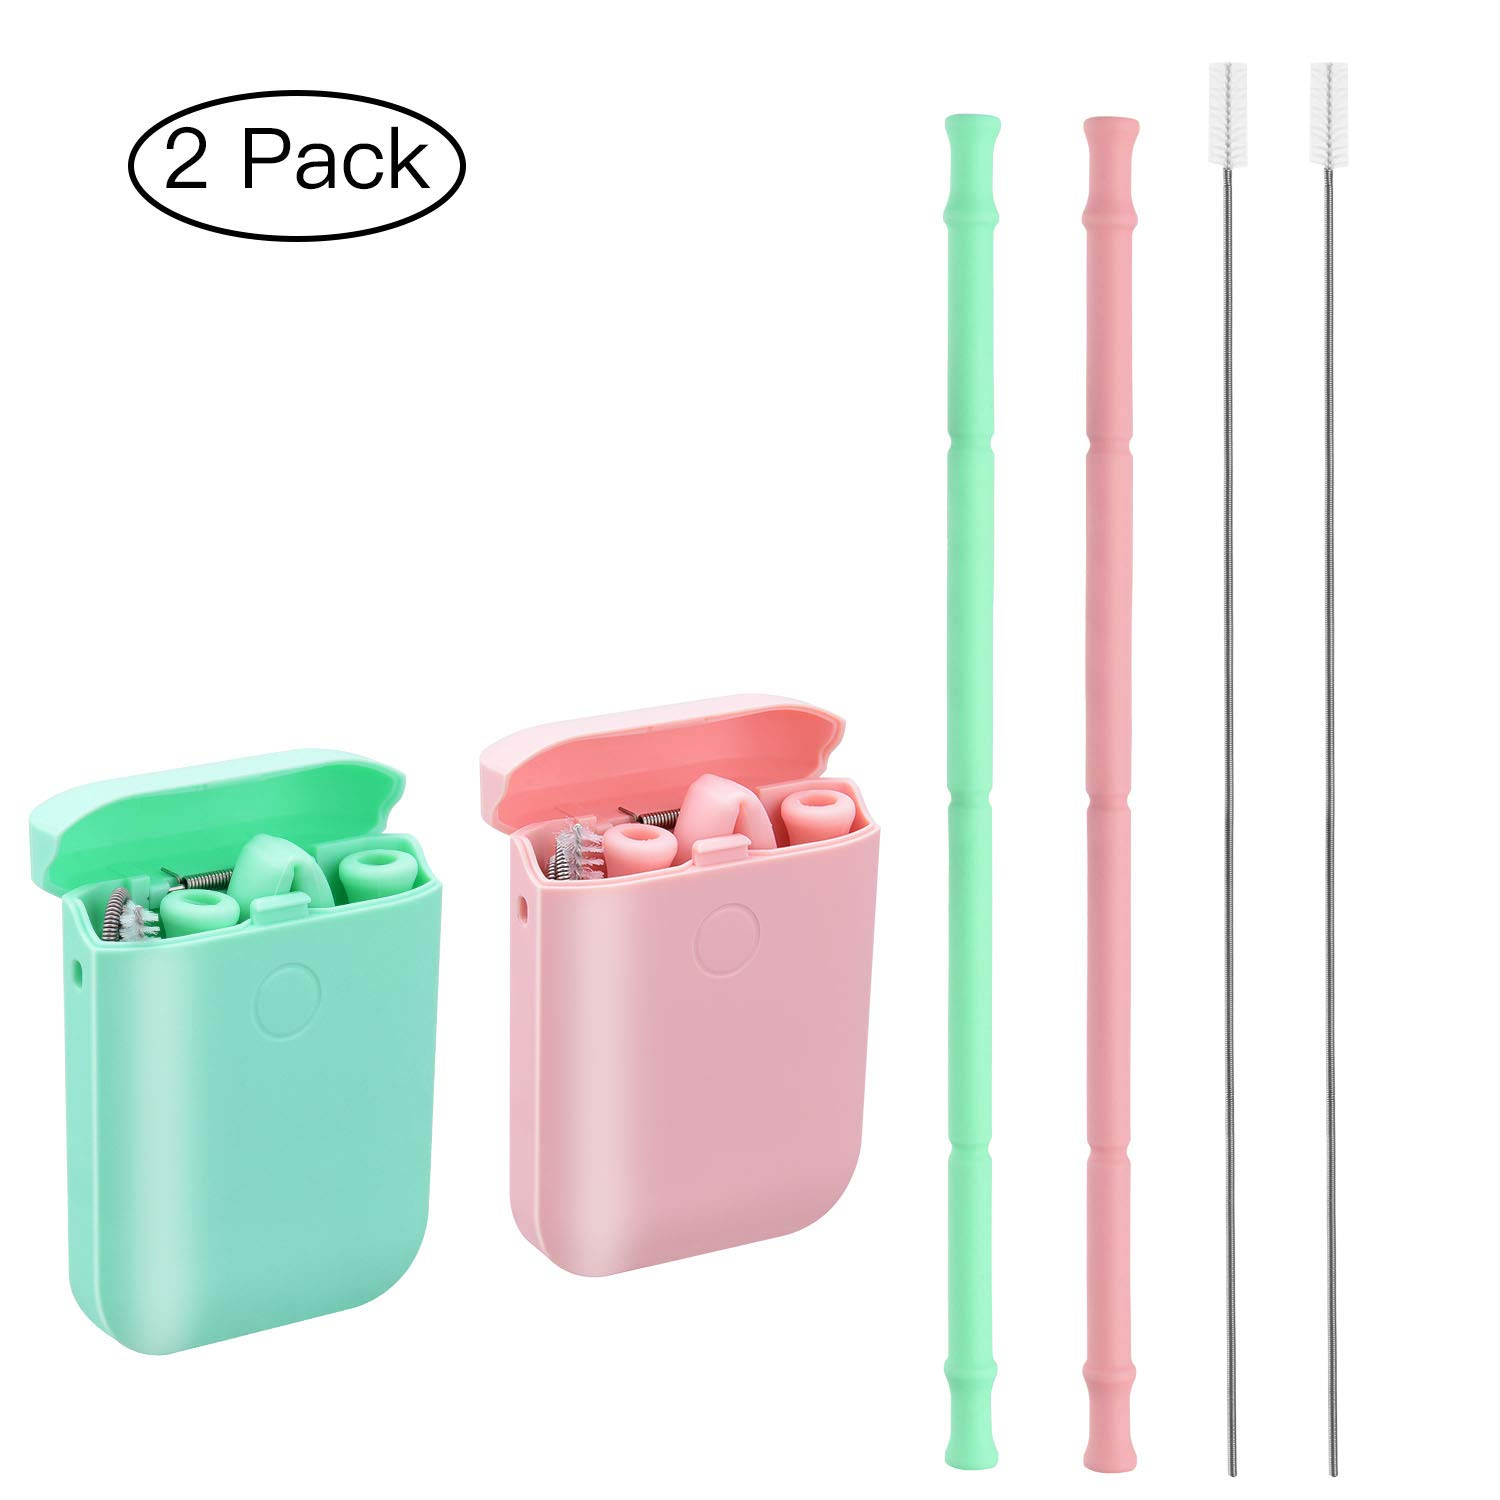 Easyworld Collapsible Reusable Straws Silicone Drinking Straw Premium Food-Grade Portable Foldable Straws 2 Pack (Pink/Green)